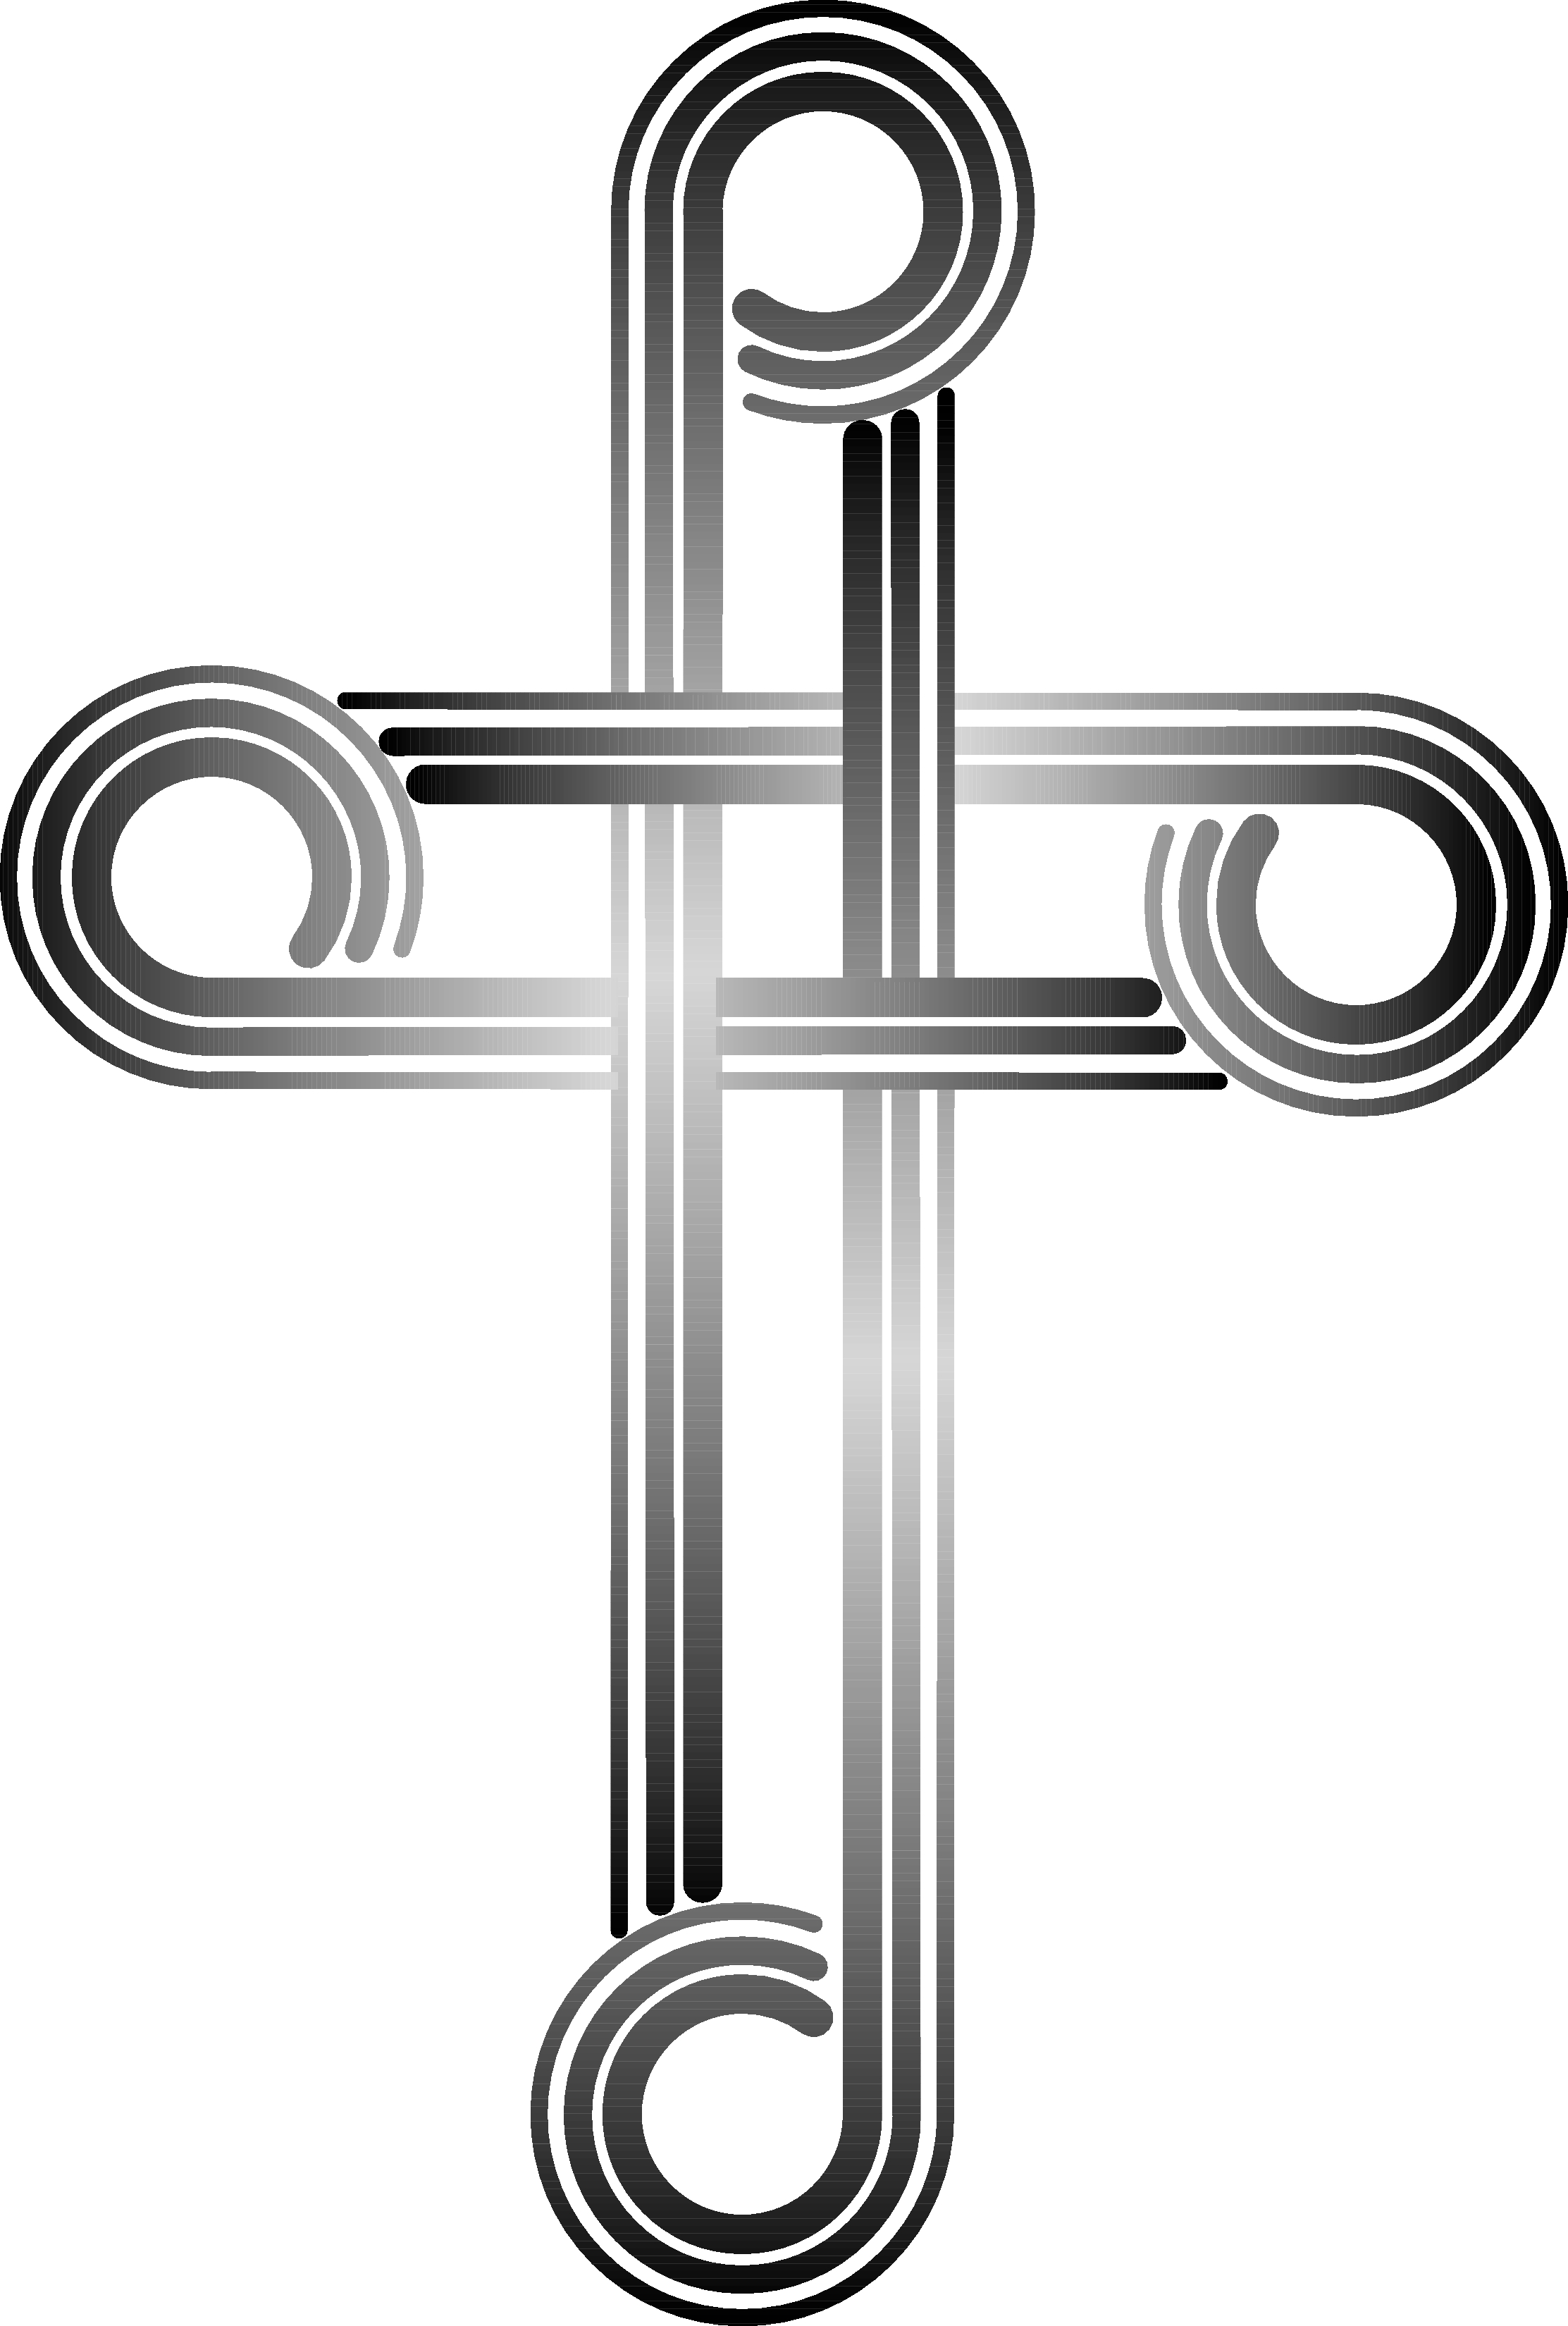 Wooden Cross Clipart Black And White | Clipart Panda - Free ...